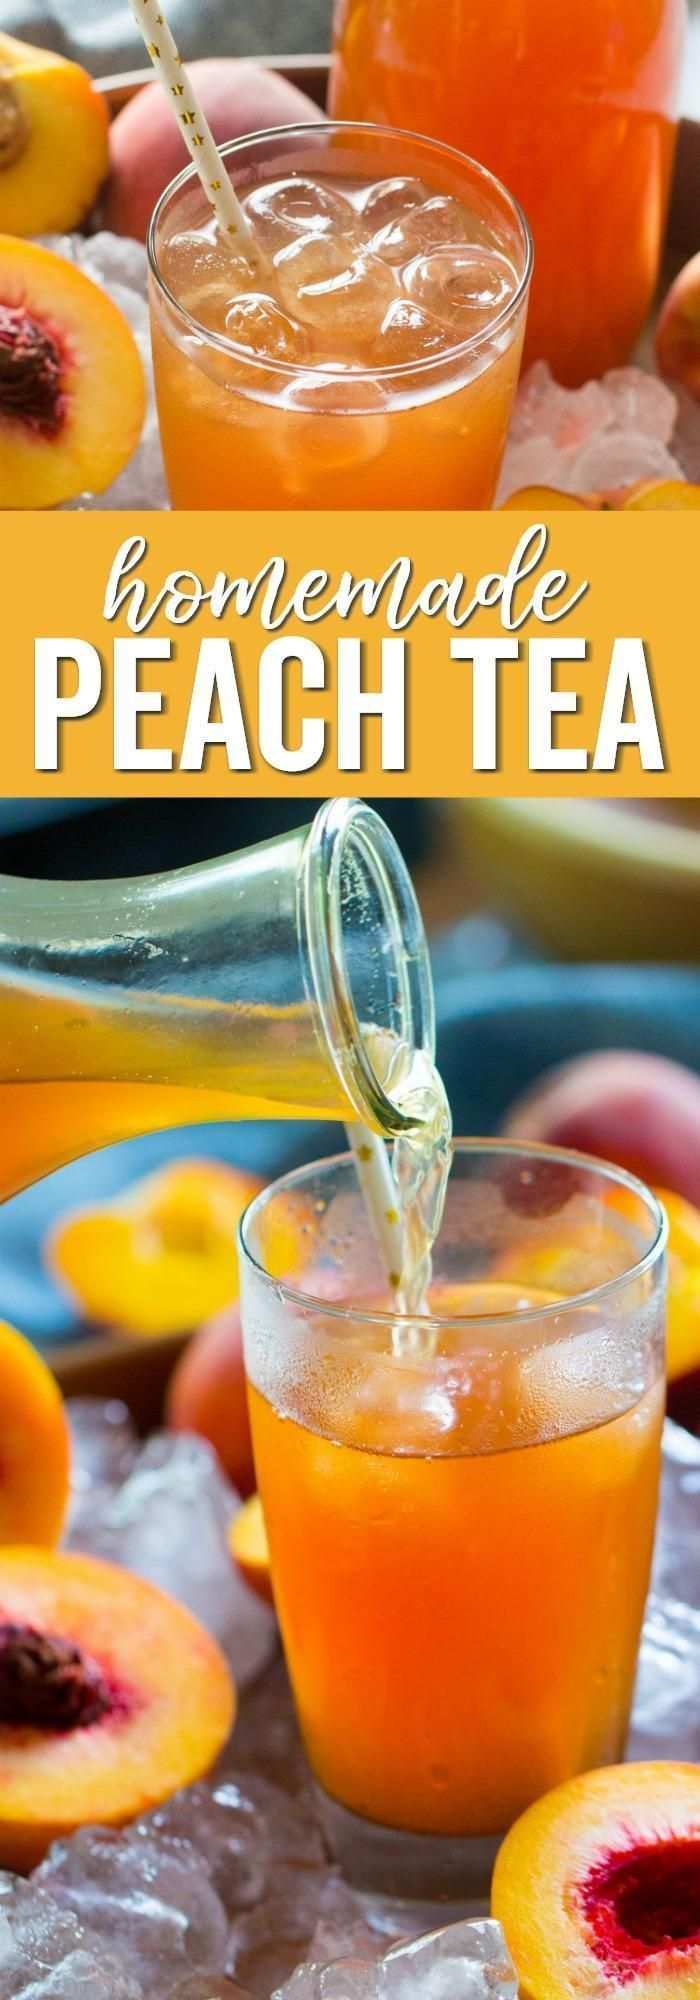 Easy Peach Tea Recipe! Homemade Tea Recipe that Everyone will Love!